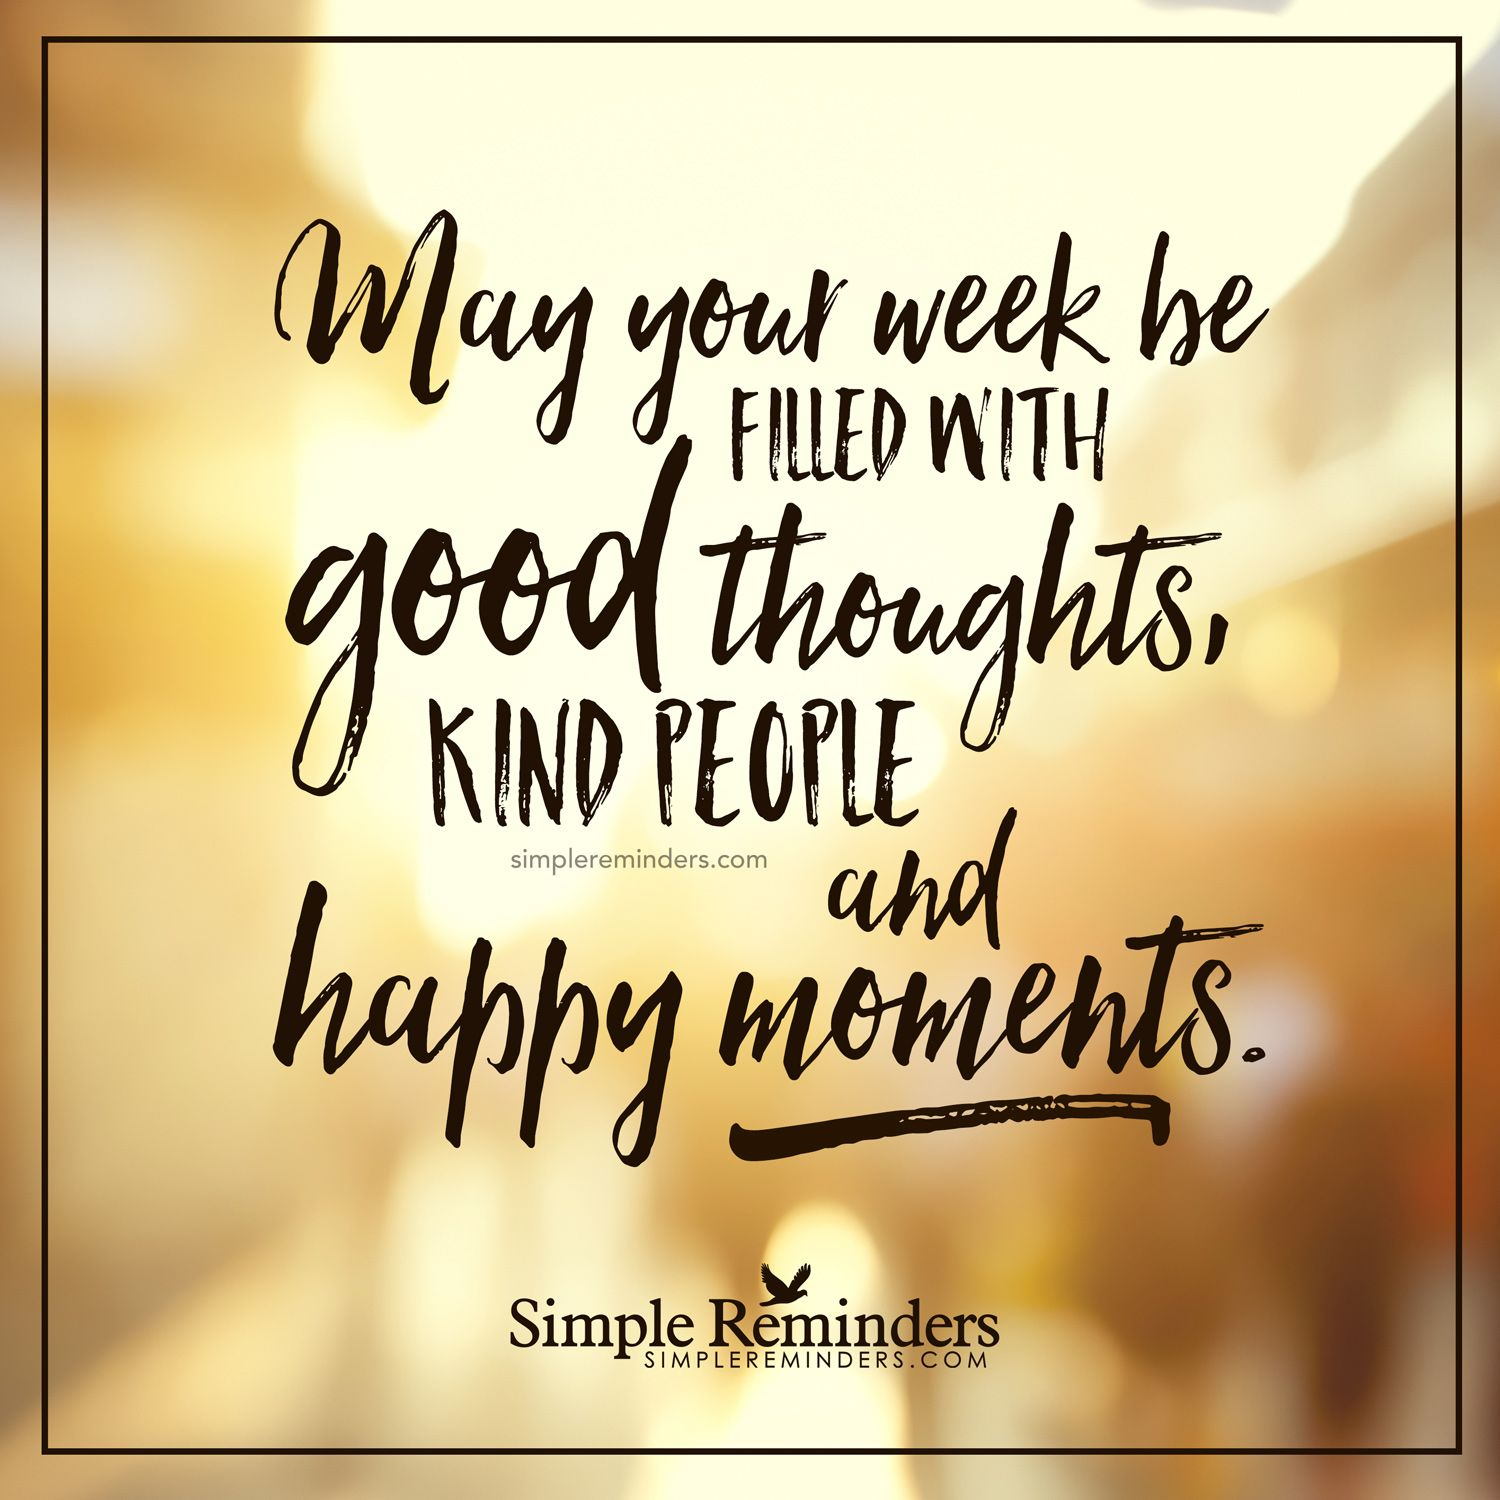 Fill your week with happy moments May your week be filled with